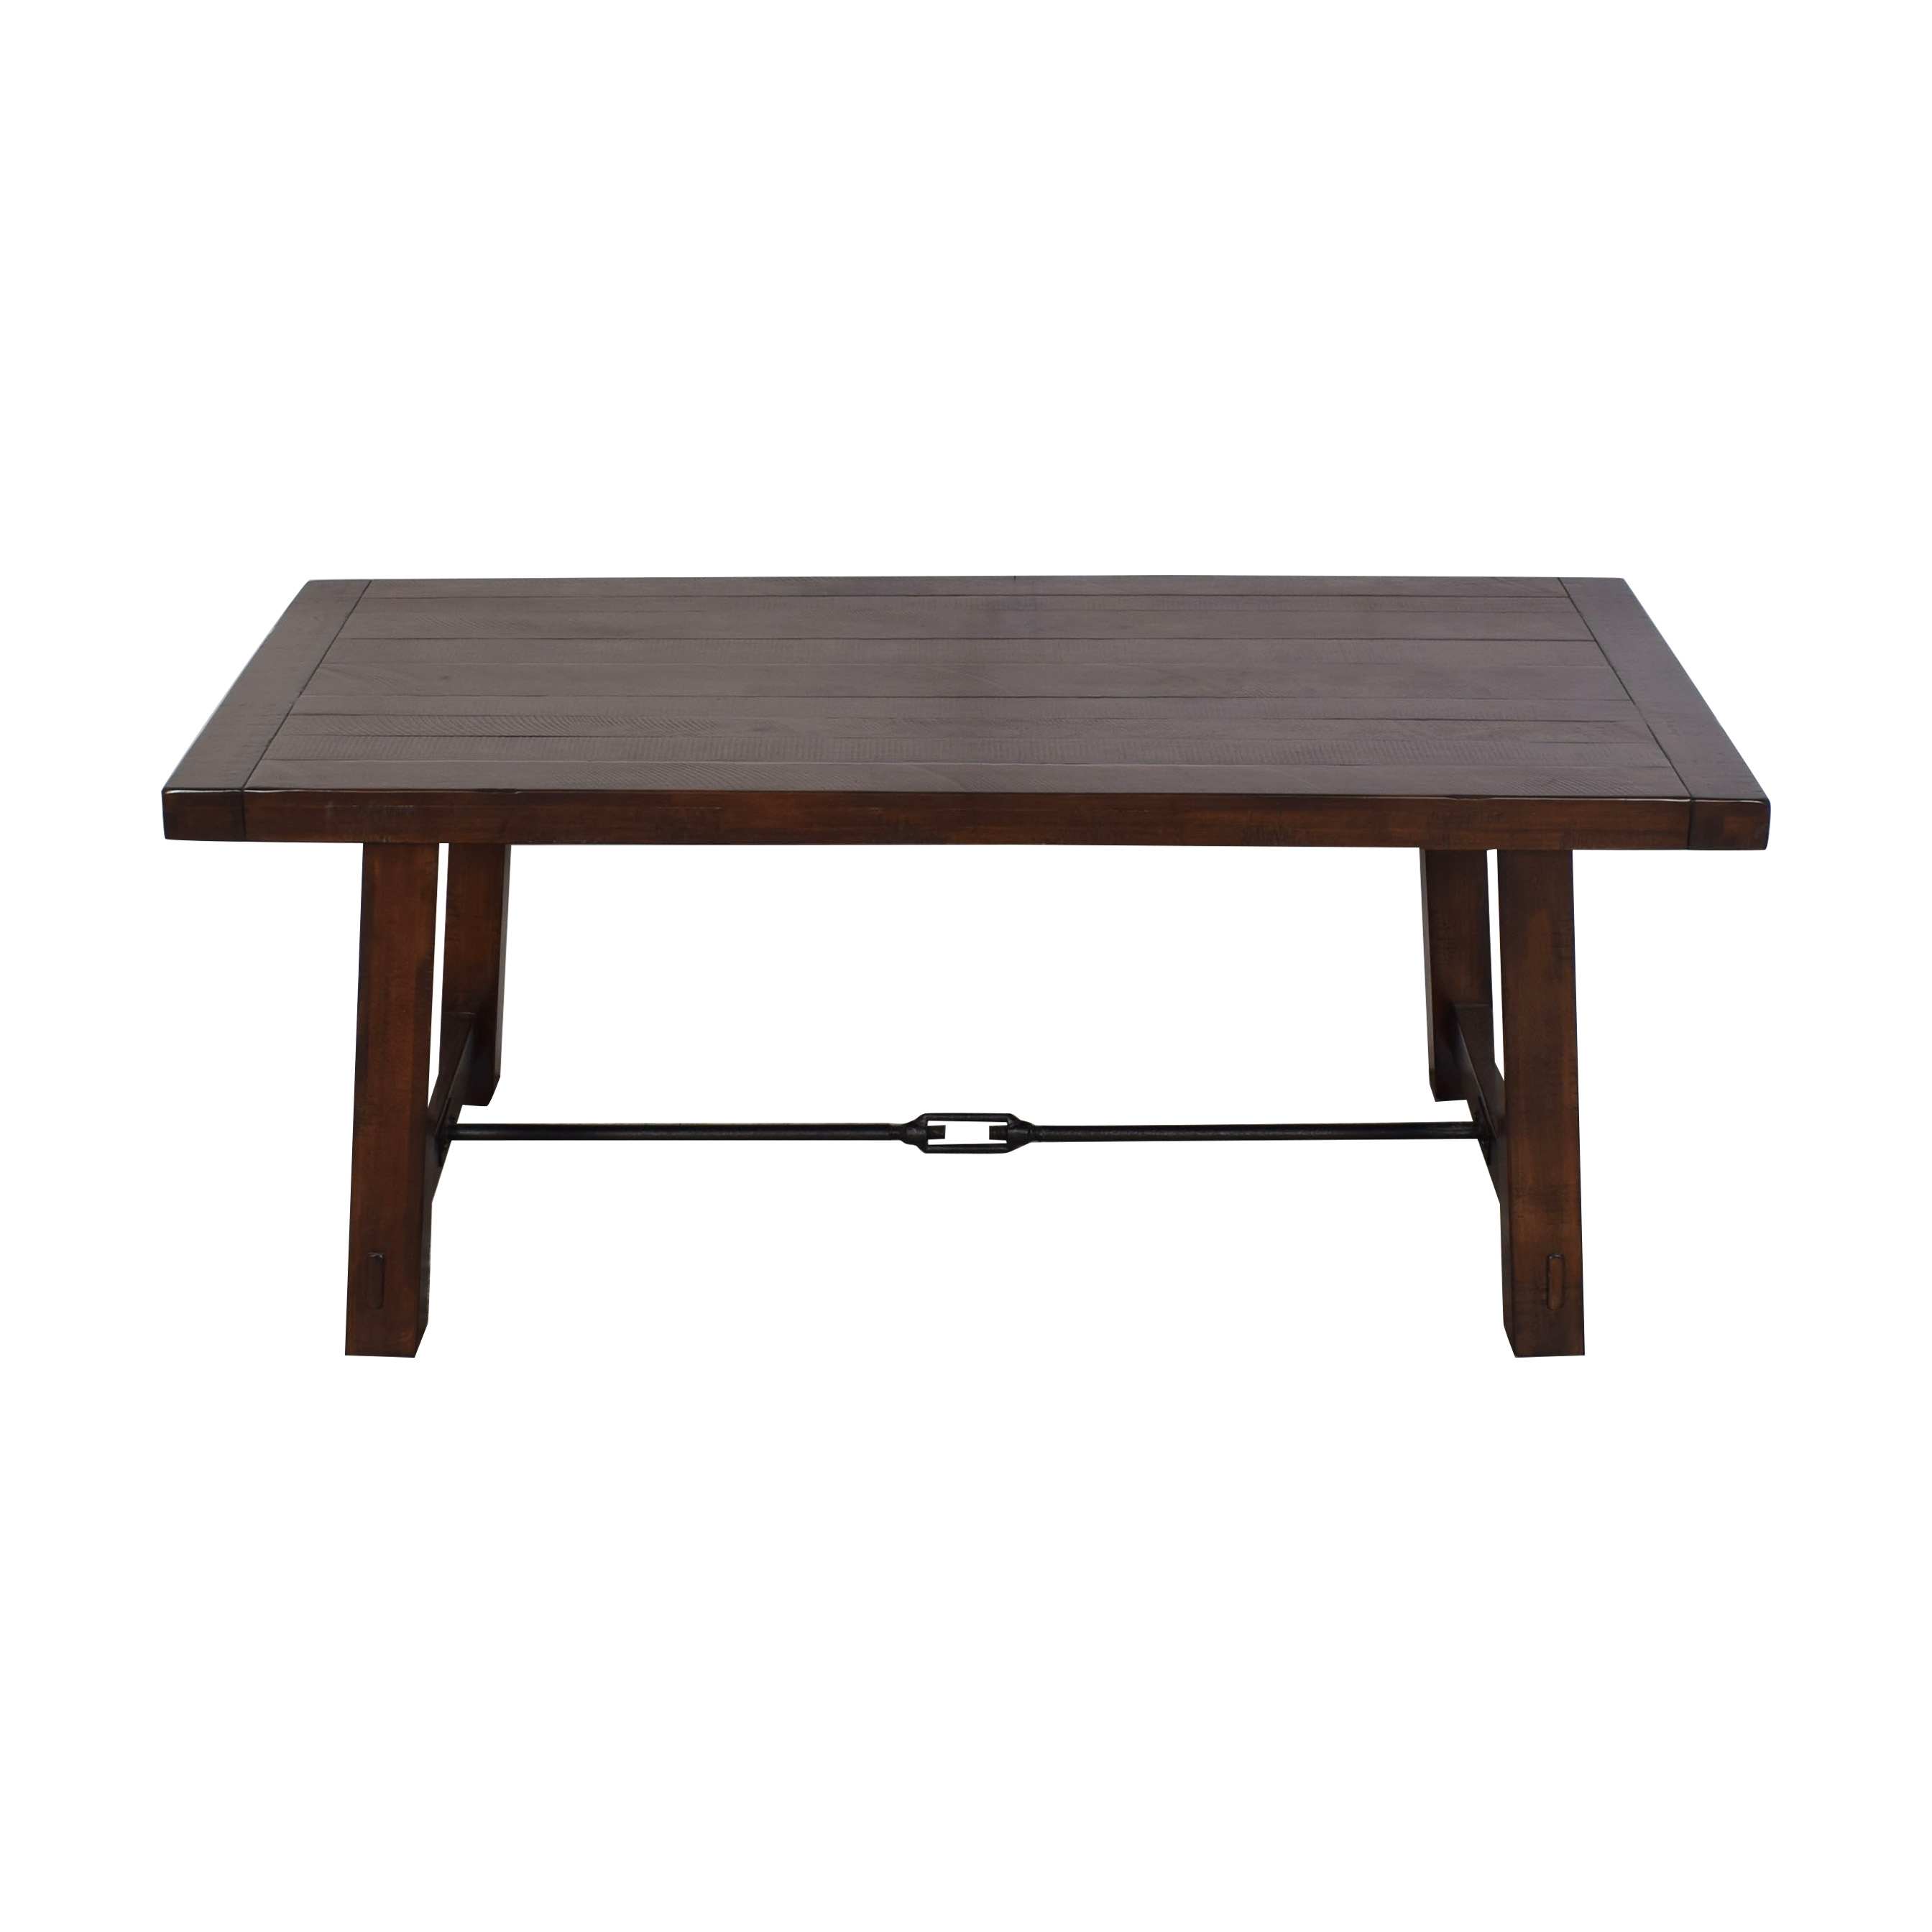 Pottery Barn Pottery Barn Benchwright Dining Table ma